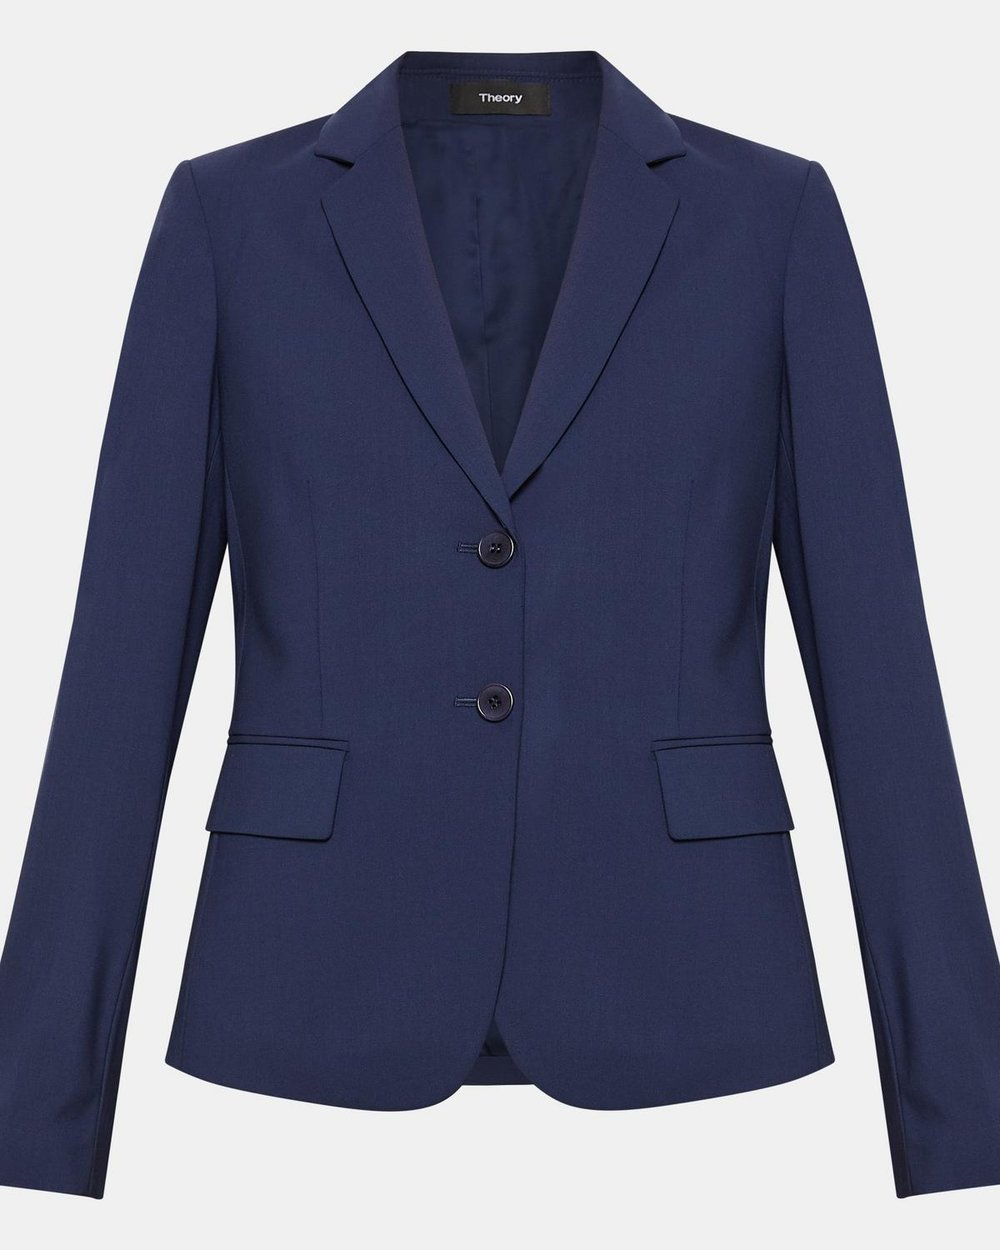 Theory Good Wool Carissa Blazer.jpeg